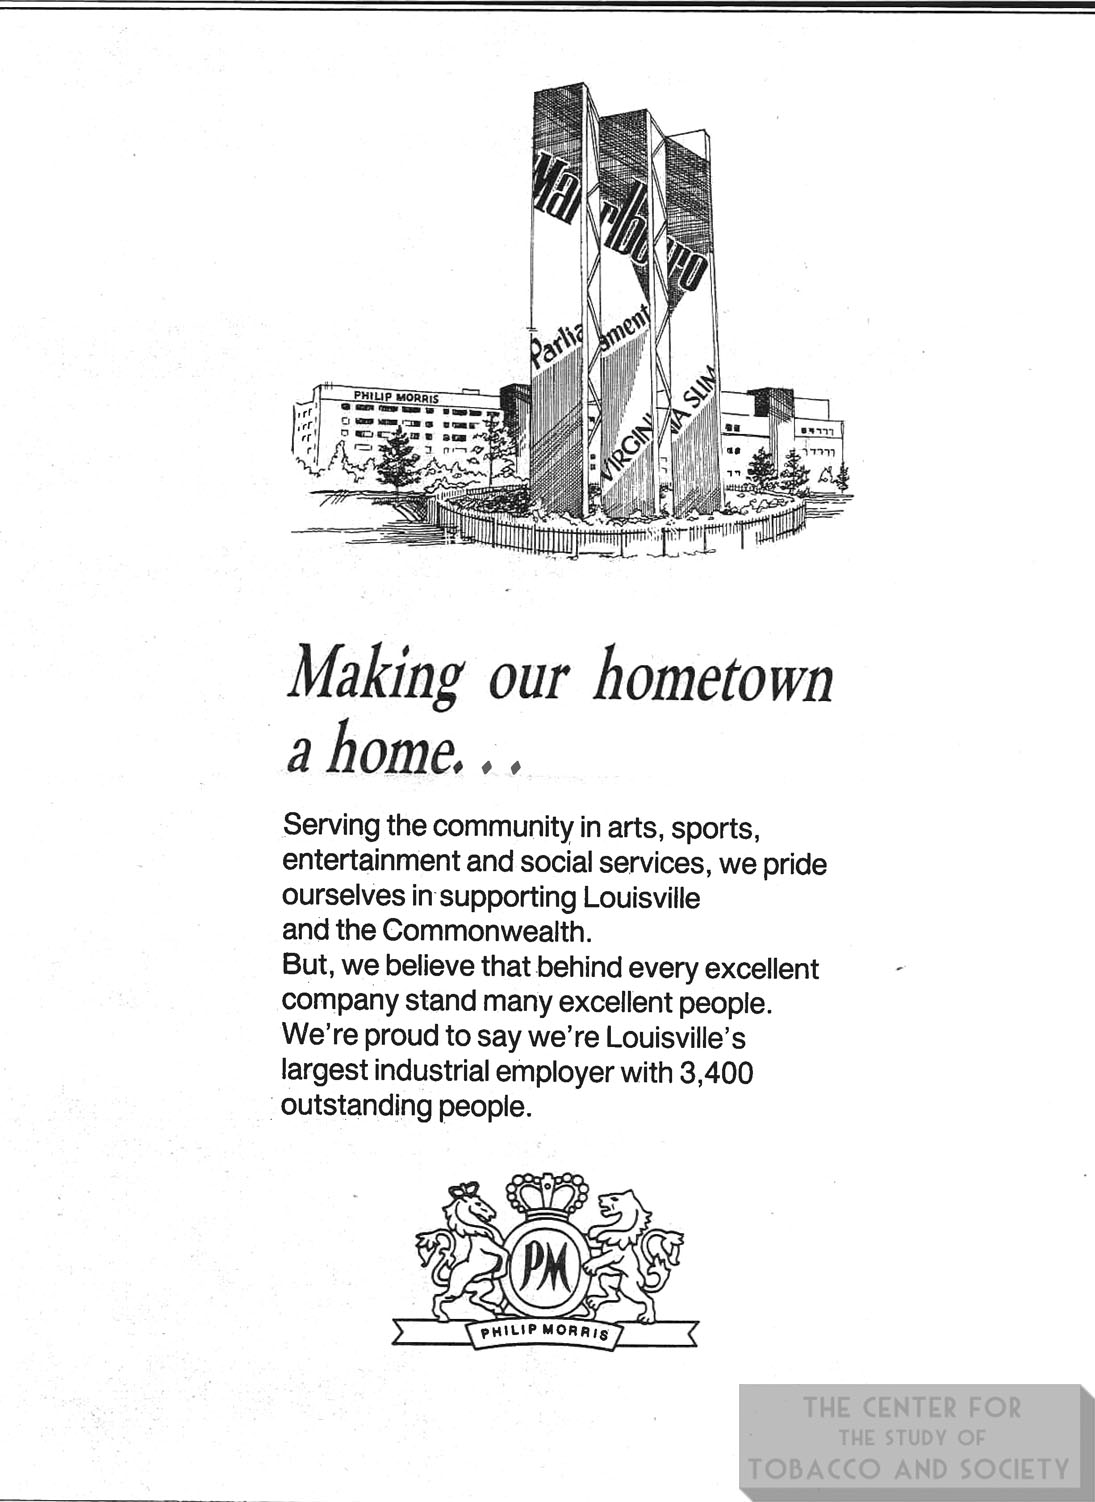 n.d. PM Corporate Ad Making Our Hometown a Home